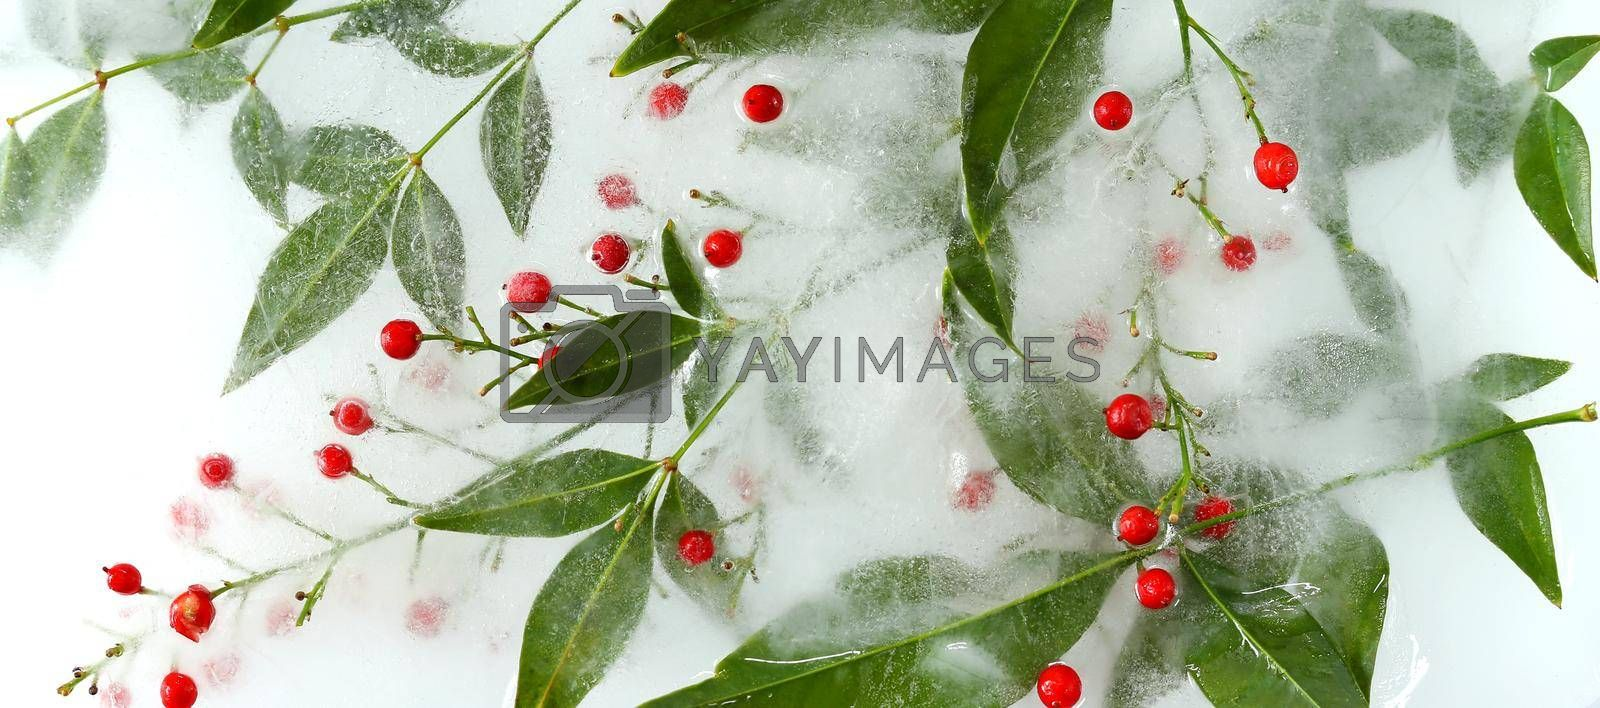 Frozen flowers. Japanese bamboo with red berries, top view. Beautiful flowers arrangement